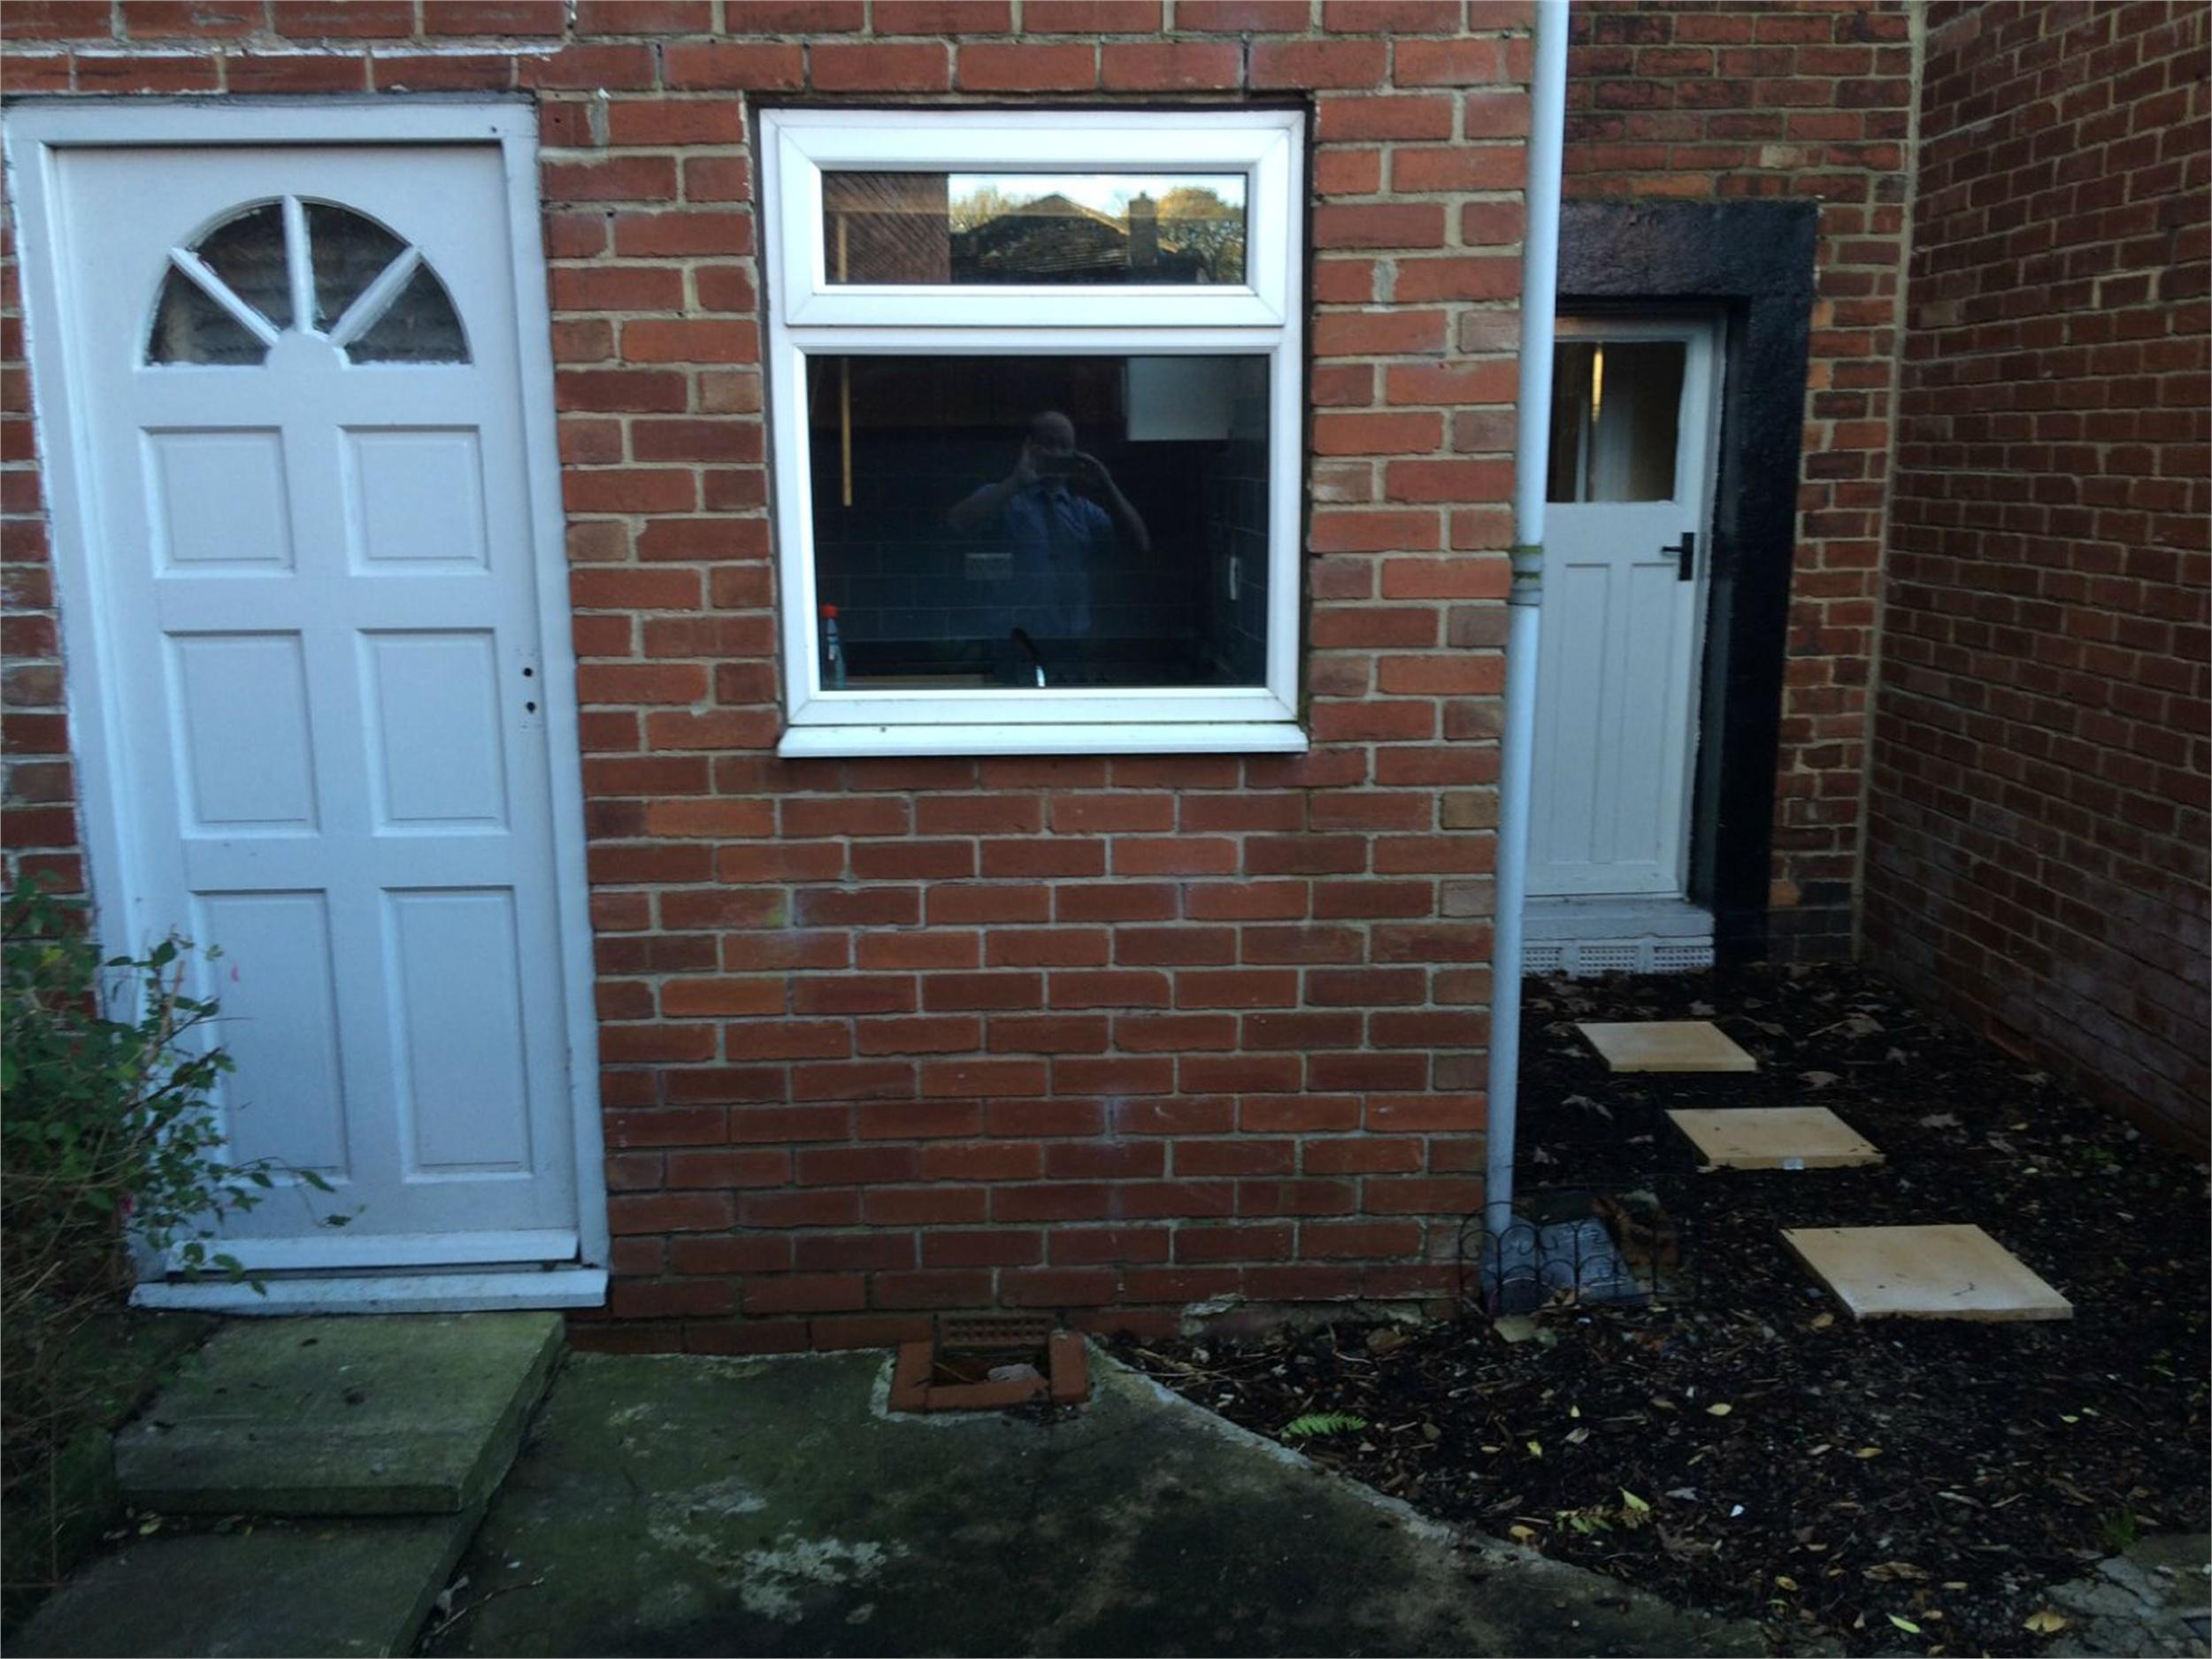 Whitegates Dewsbury 2 Bedroom House For Sale In Mortimer